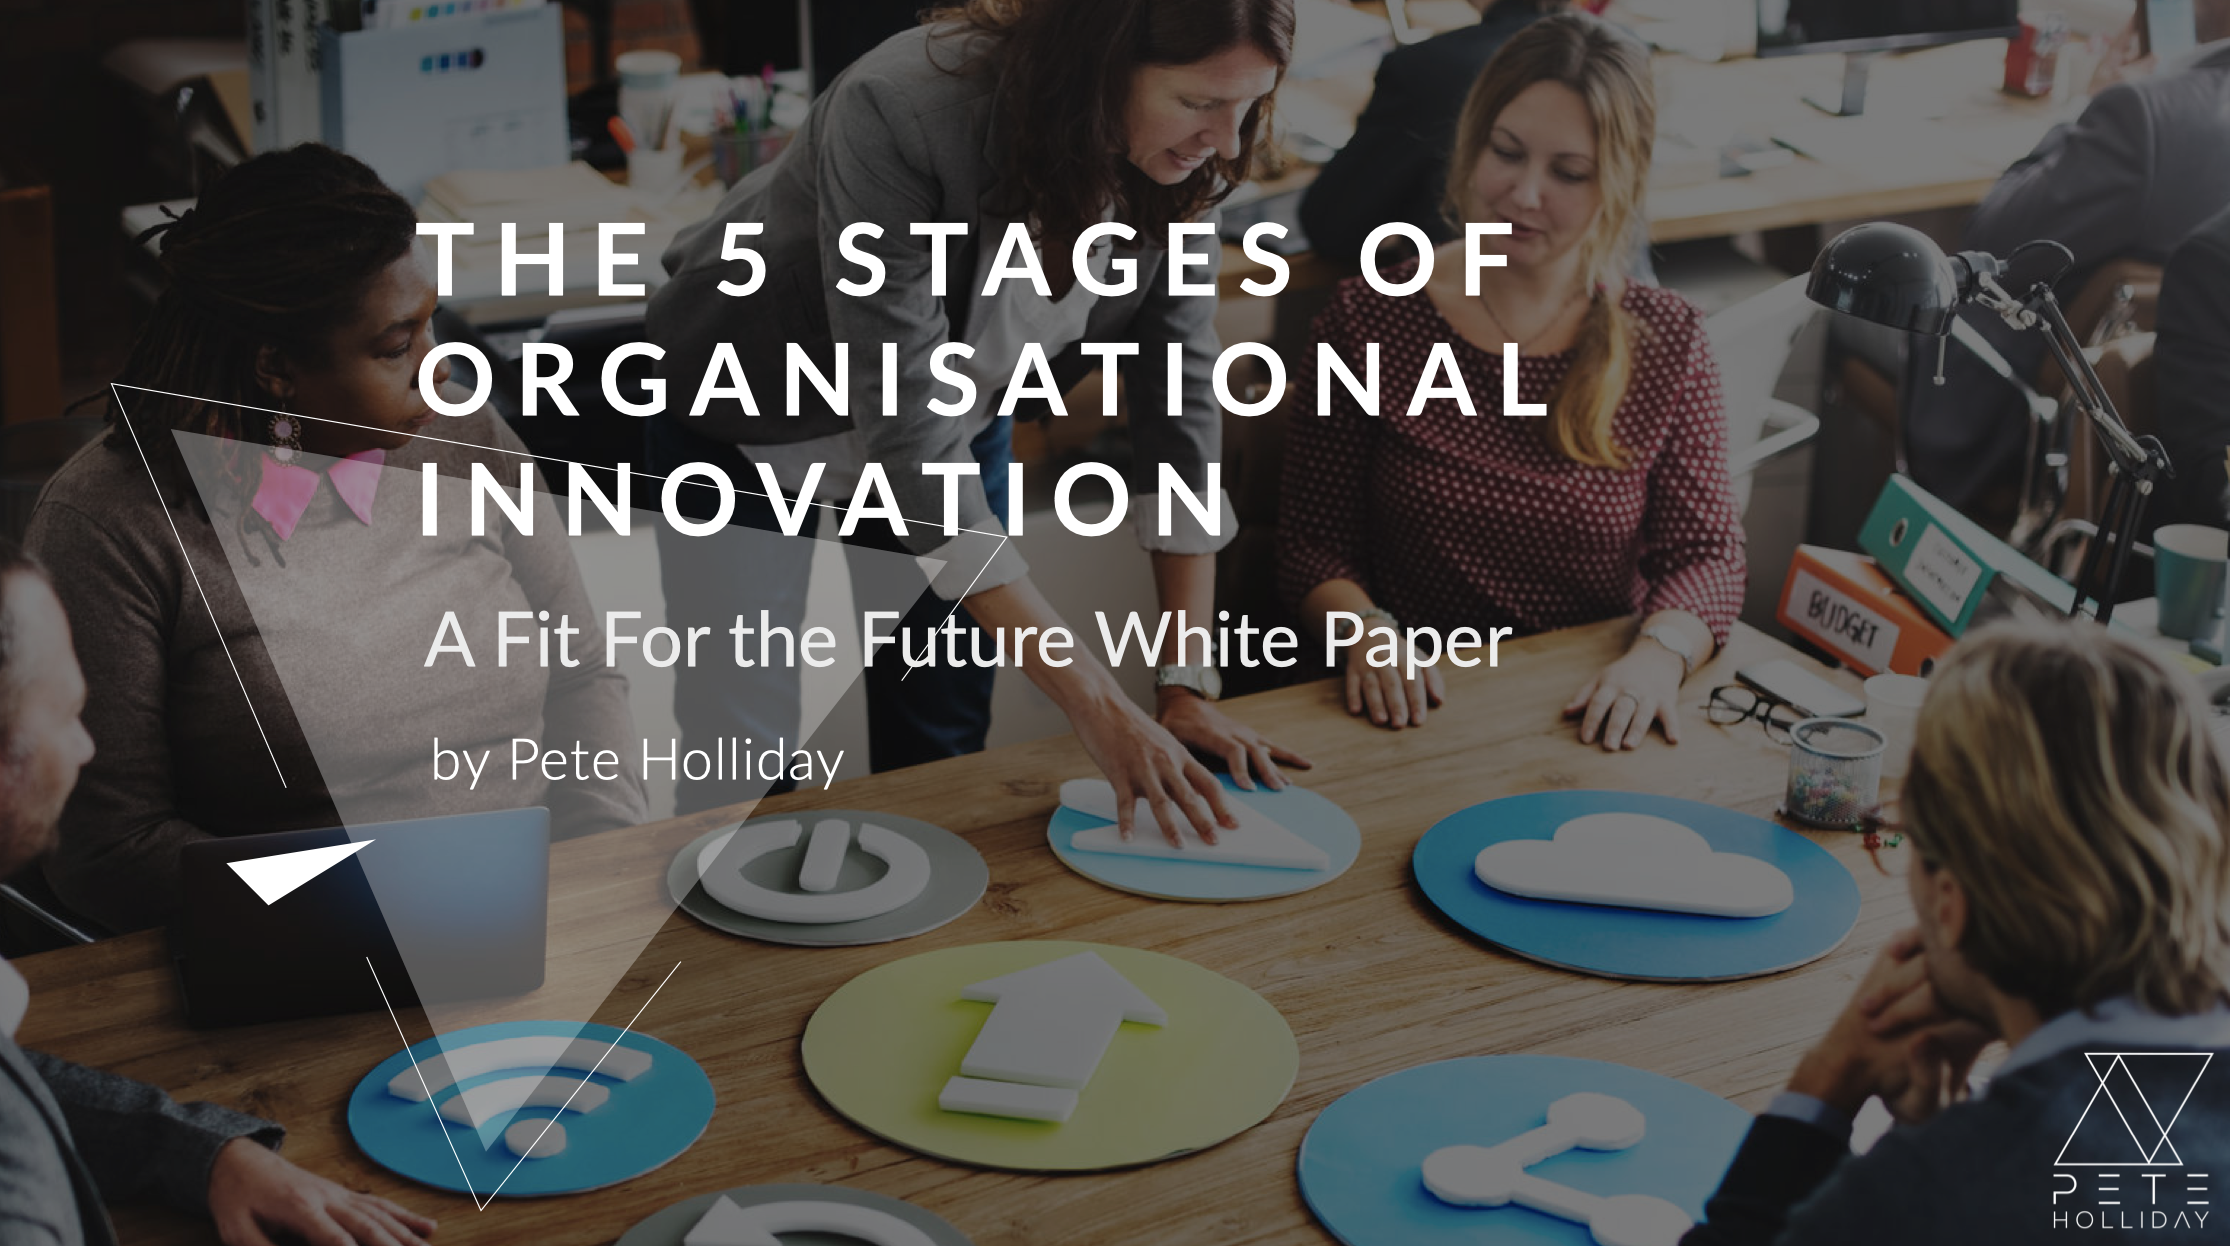 The 5 Stages of Organisational Innovation - Lots of organisations use the word innovation but in the work I do, I find that it has multiple meanings. In this white-paper, I explored the application of innovation at different levels of organisational maturity.